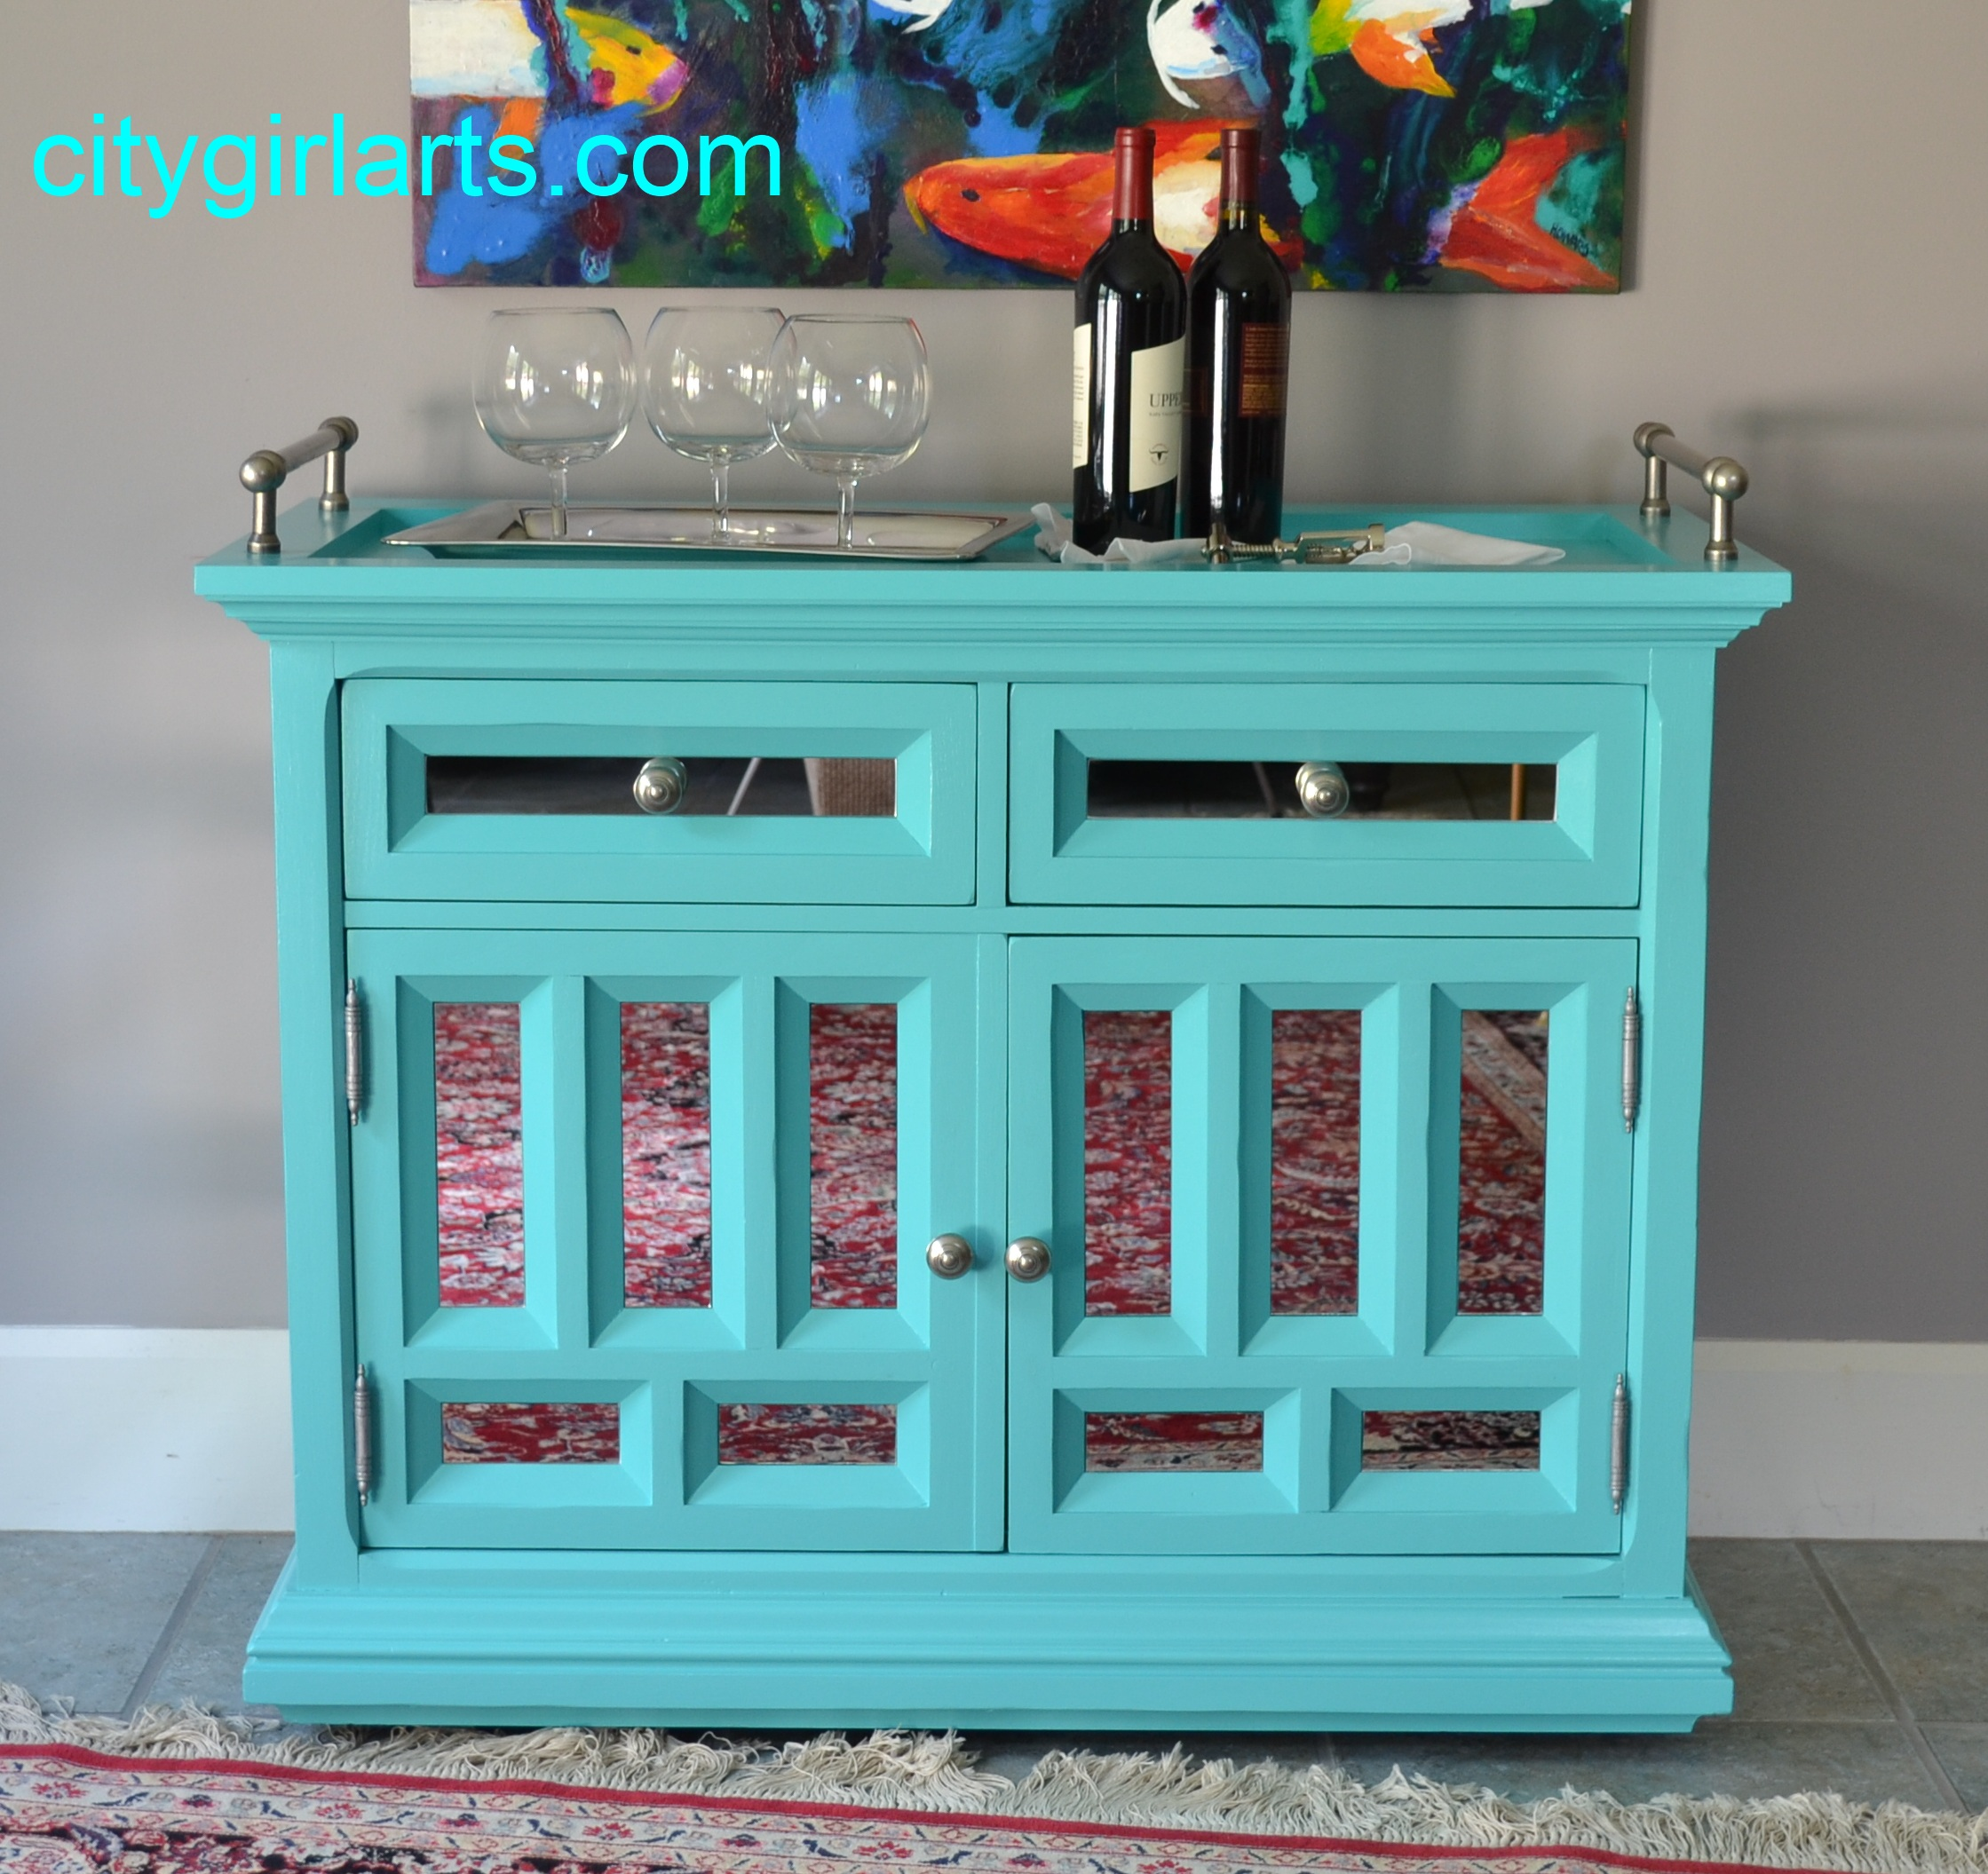 Mirrored Bar Cart Aqua Turquoise $775